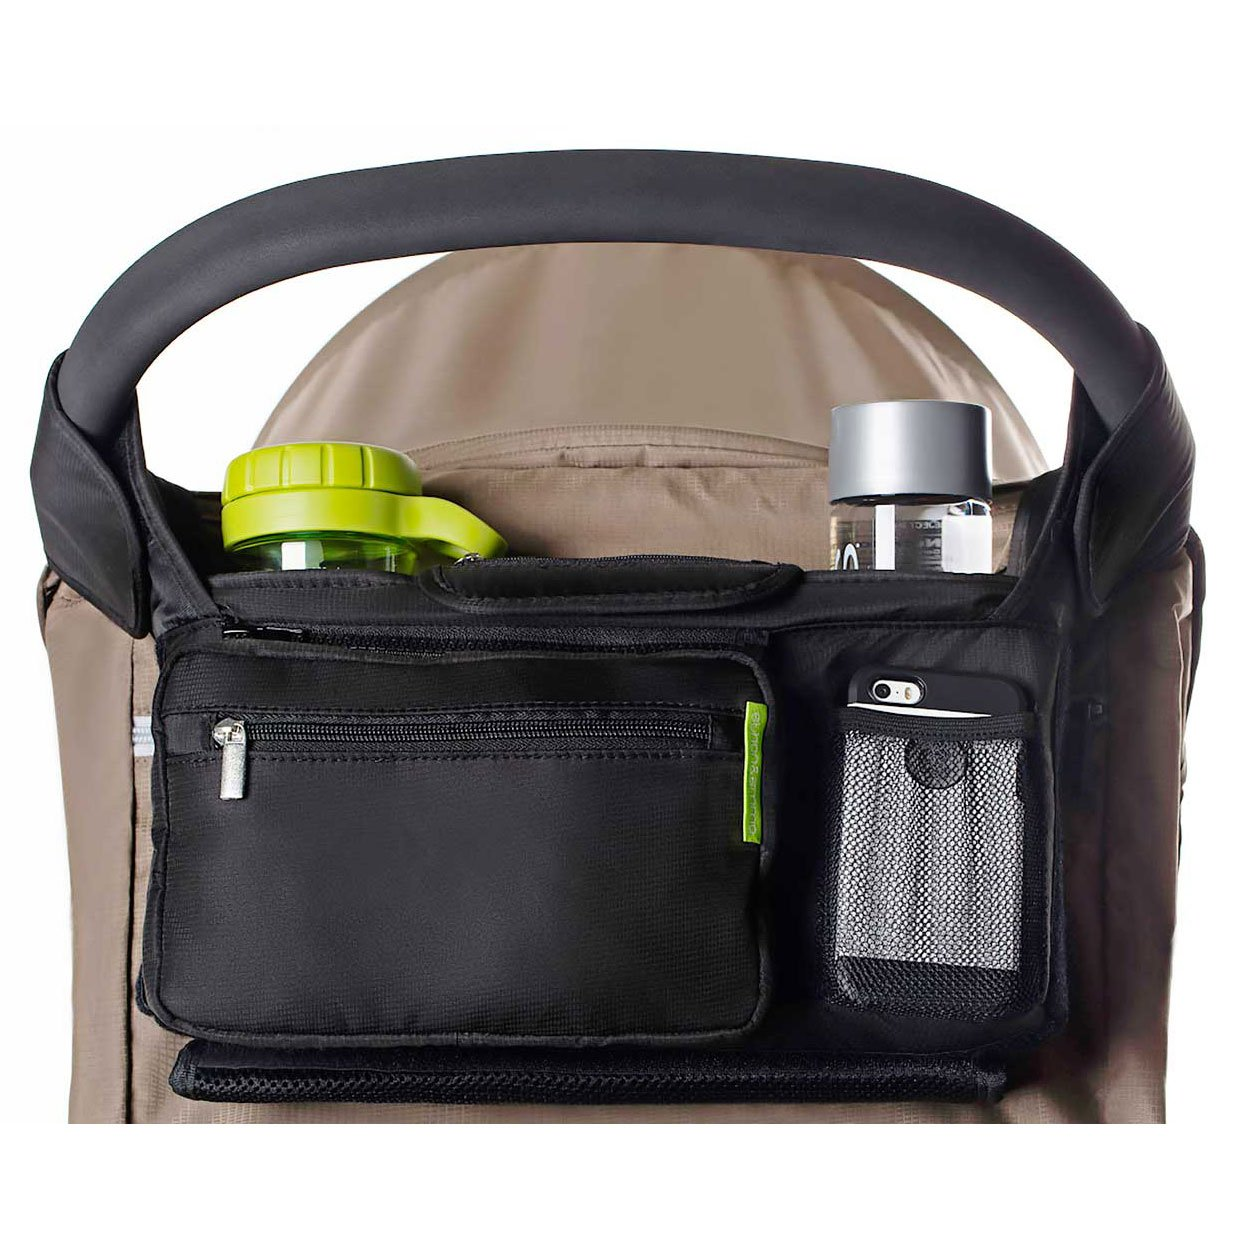 BEST STROLLER ORGANIZER for Smart Moms, Premium Deep Cup Holders, Extra-Large Storage